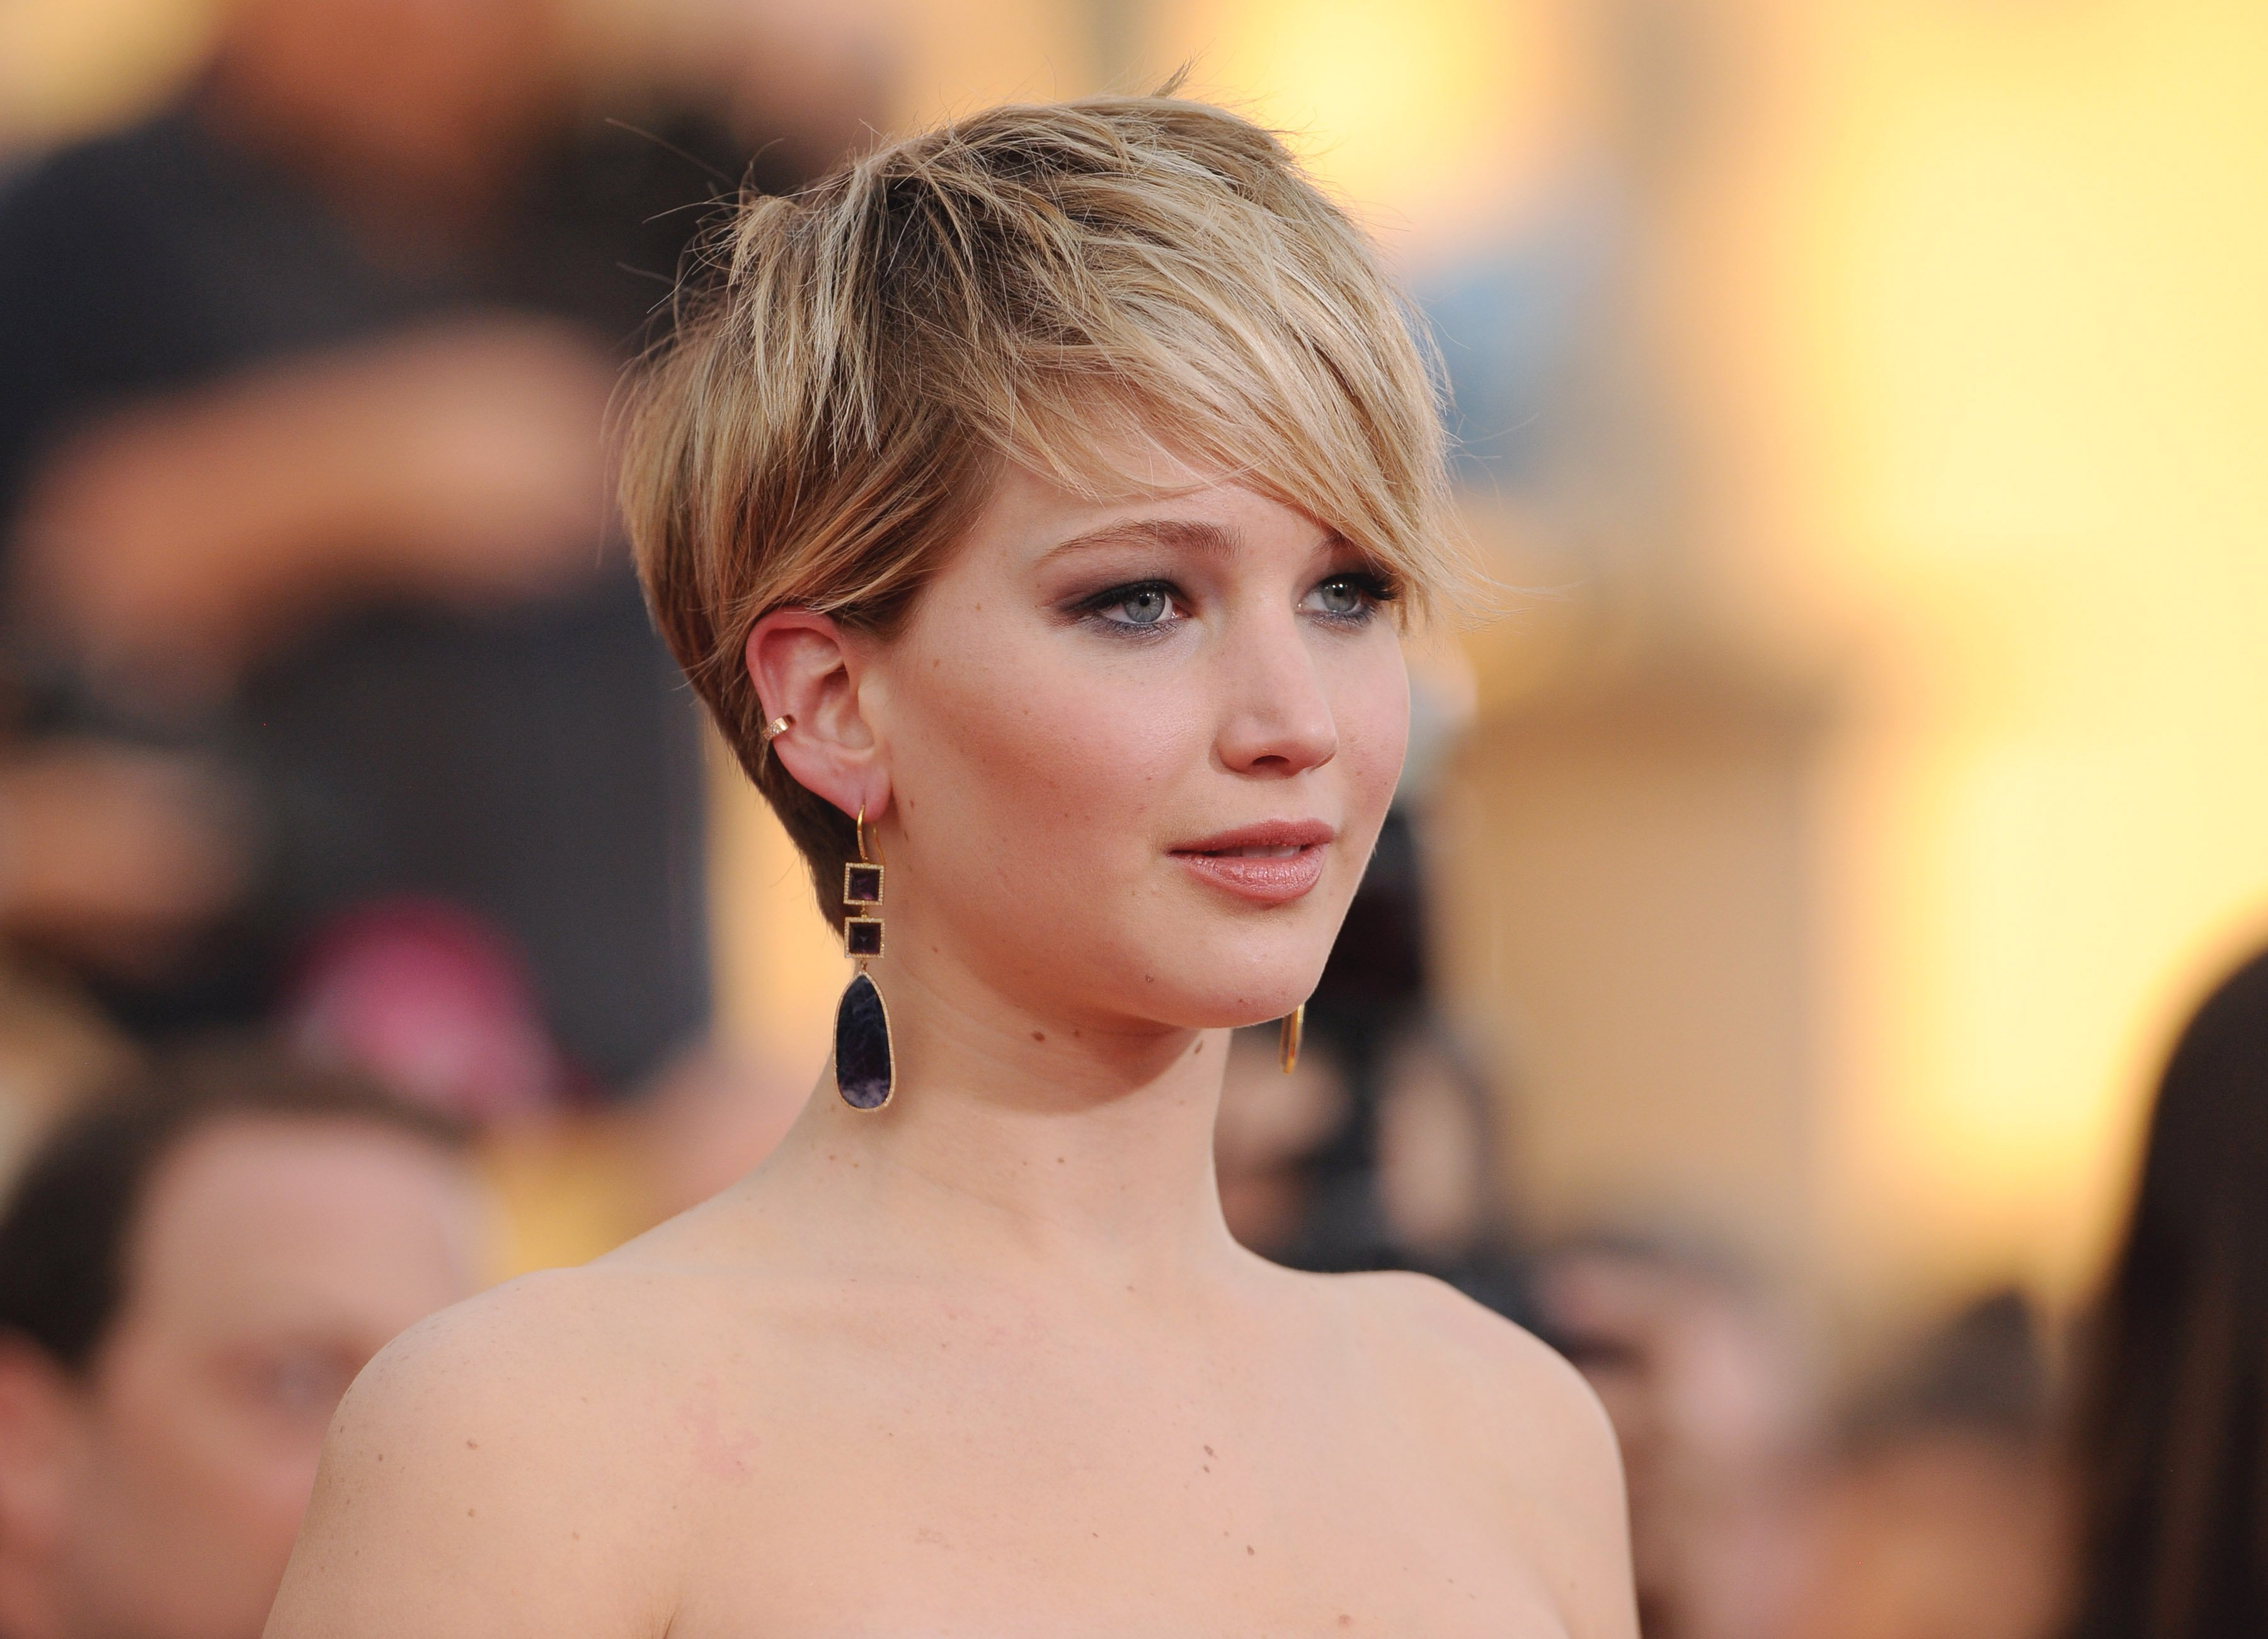 35 Fabulous Short Haircuts For Thick Hair Within Short Length Hairstyles For Thick Hair (View 17 of 25)